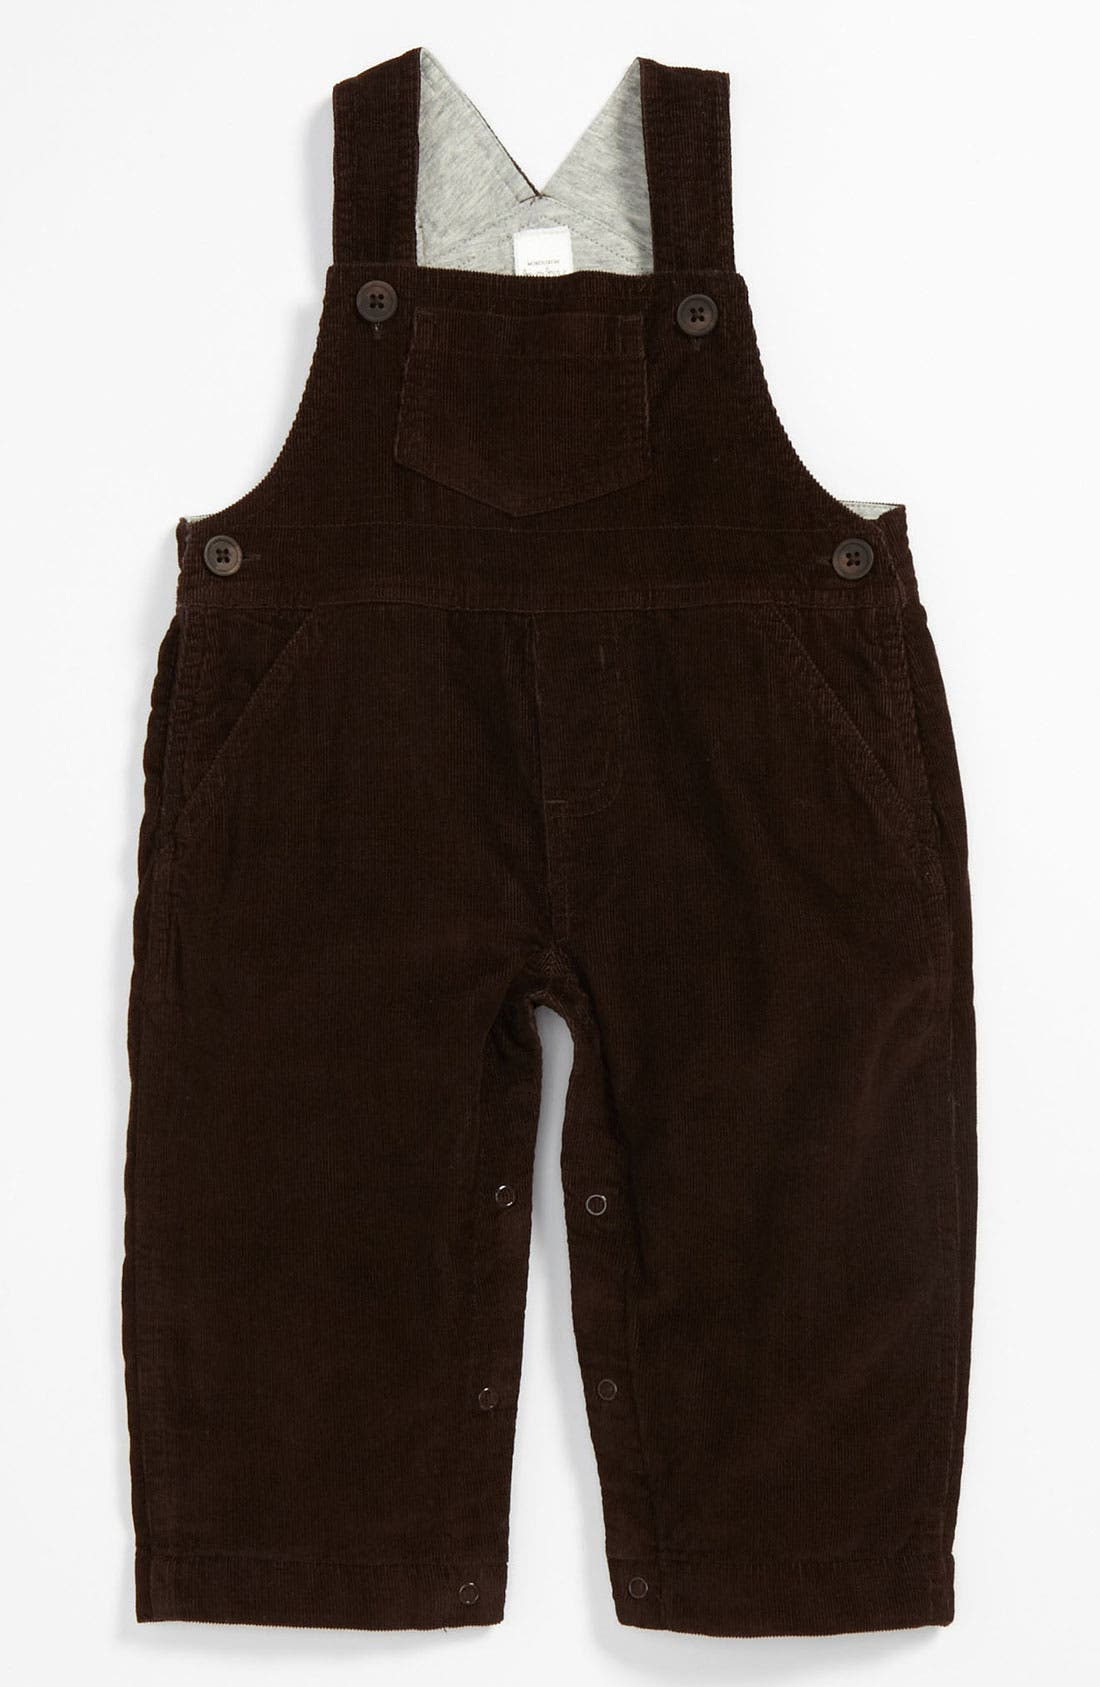 Alternate Image 1 Selected - Nordstrom Baby Corduroy Overalls (Infant)